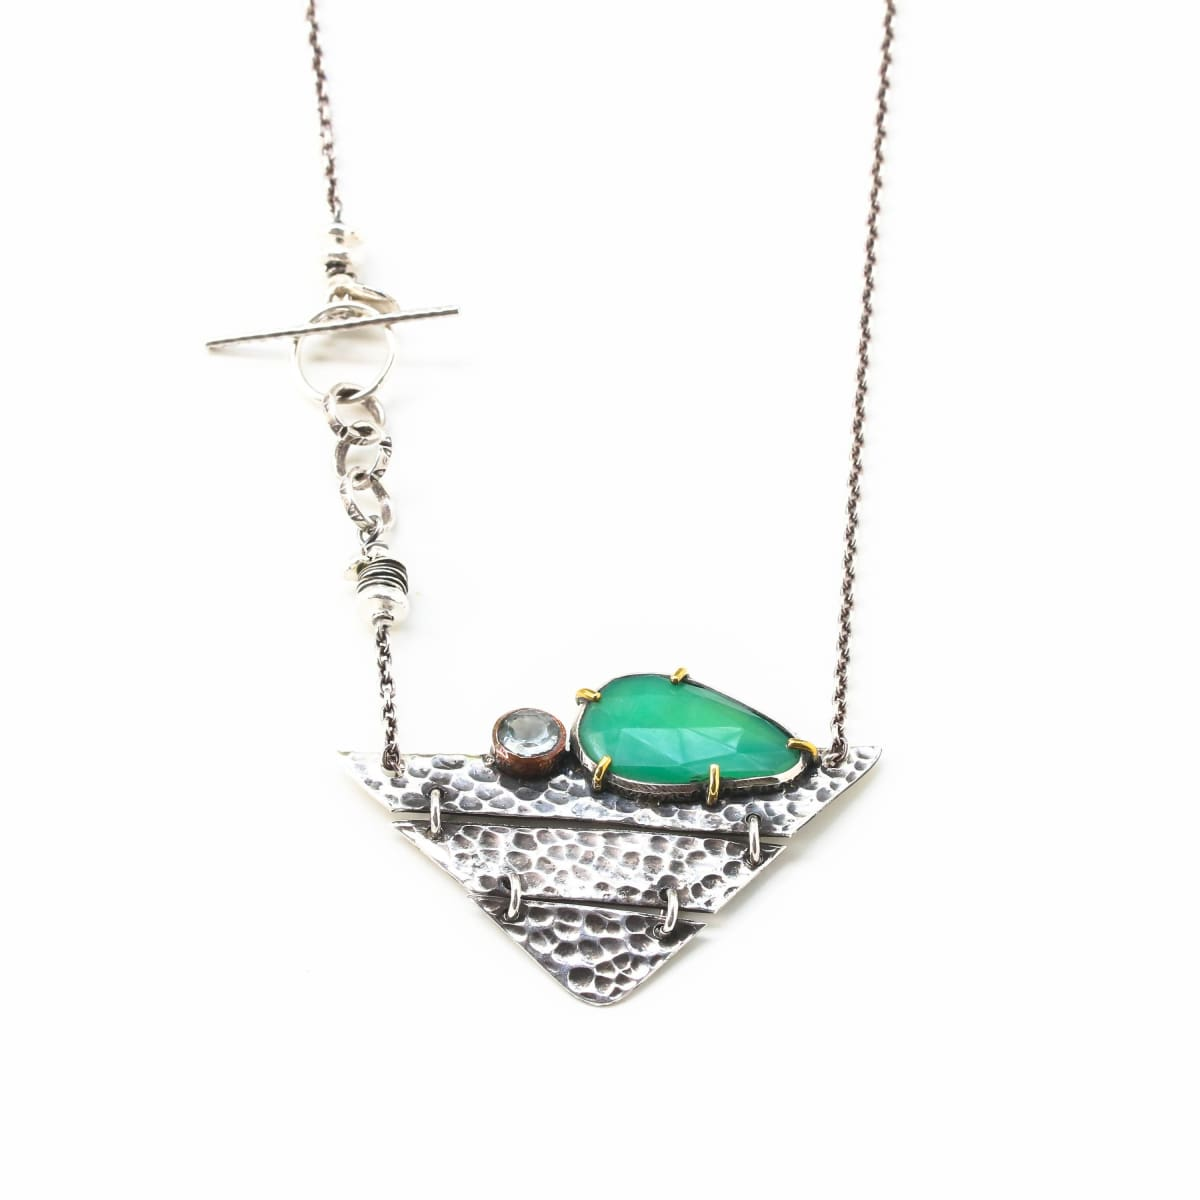 Necklaces Sterling silver triangle hammer texture folding accordion pendant necklace with Chrysoprase and blue topaz in copper bezel setting